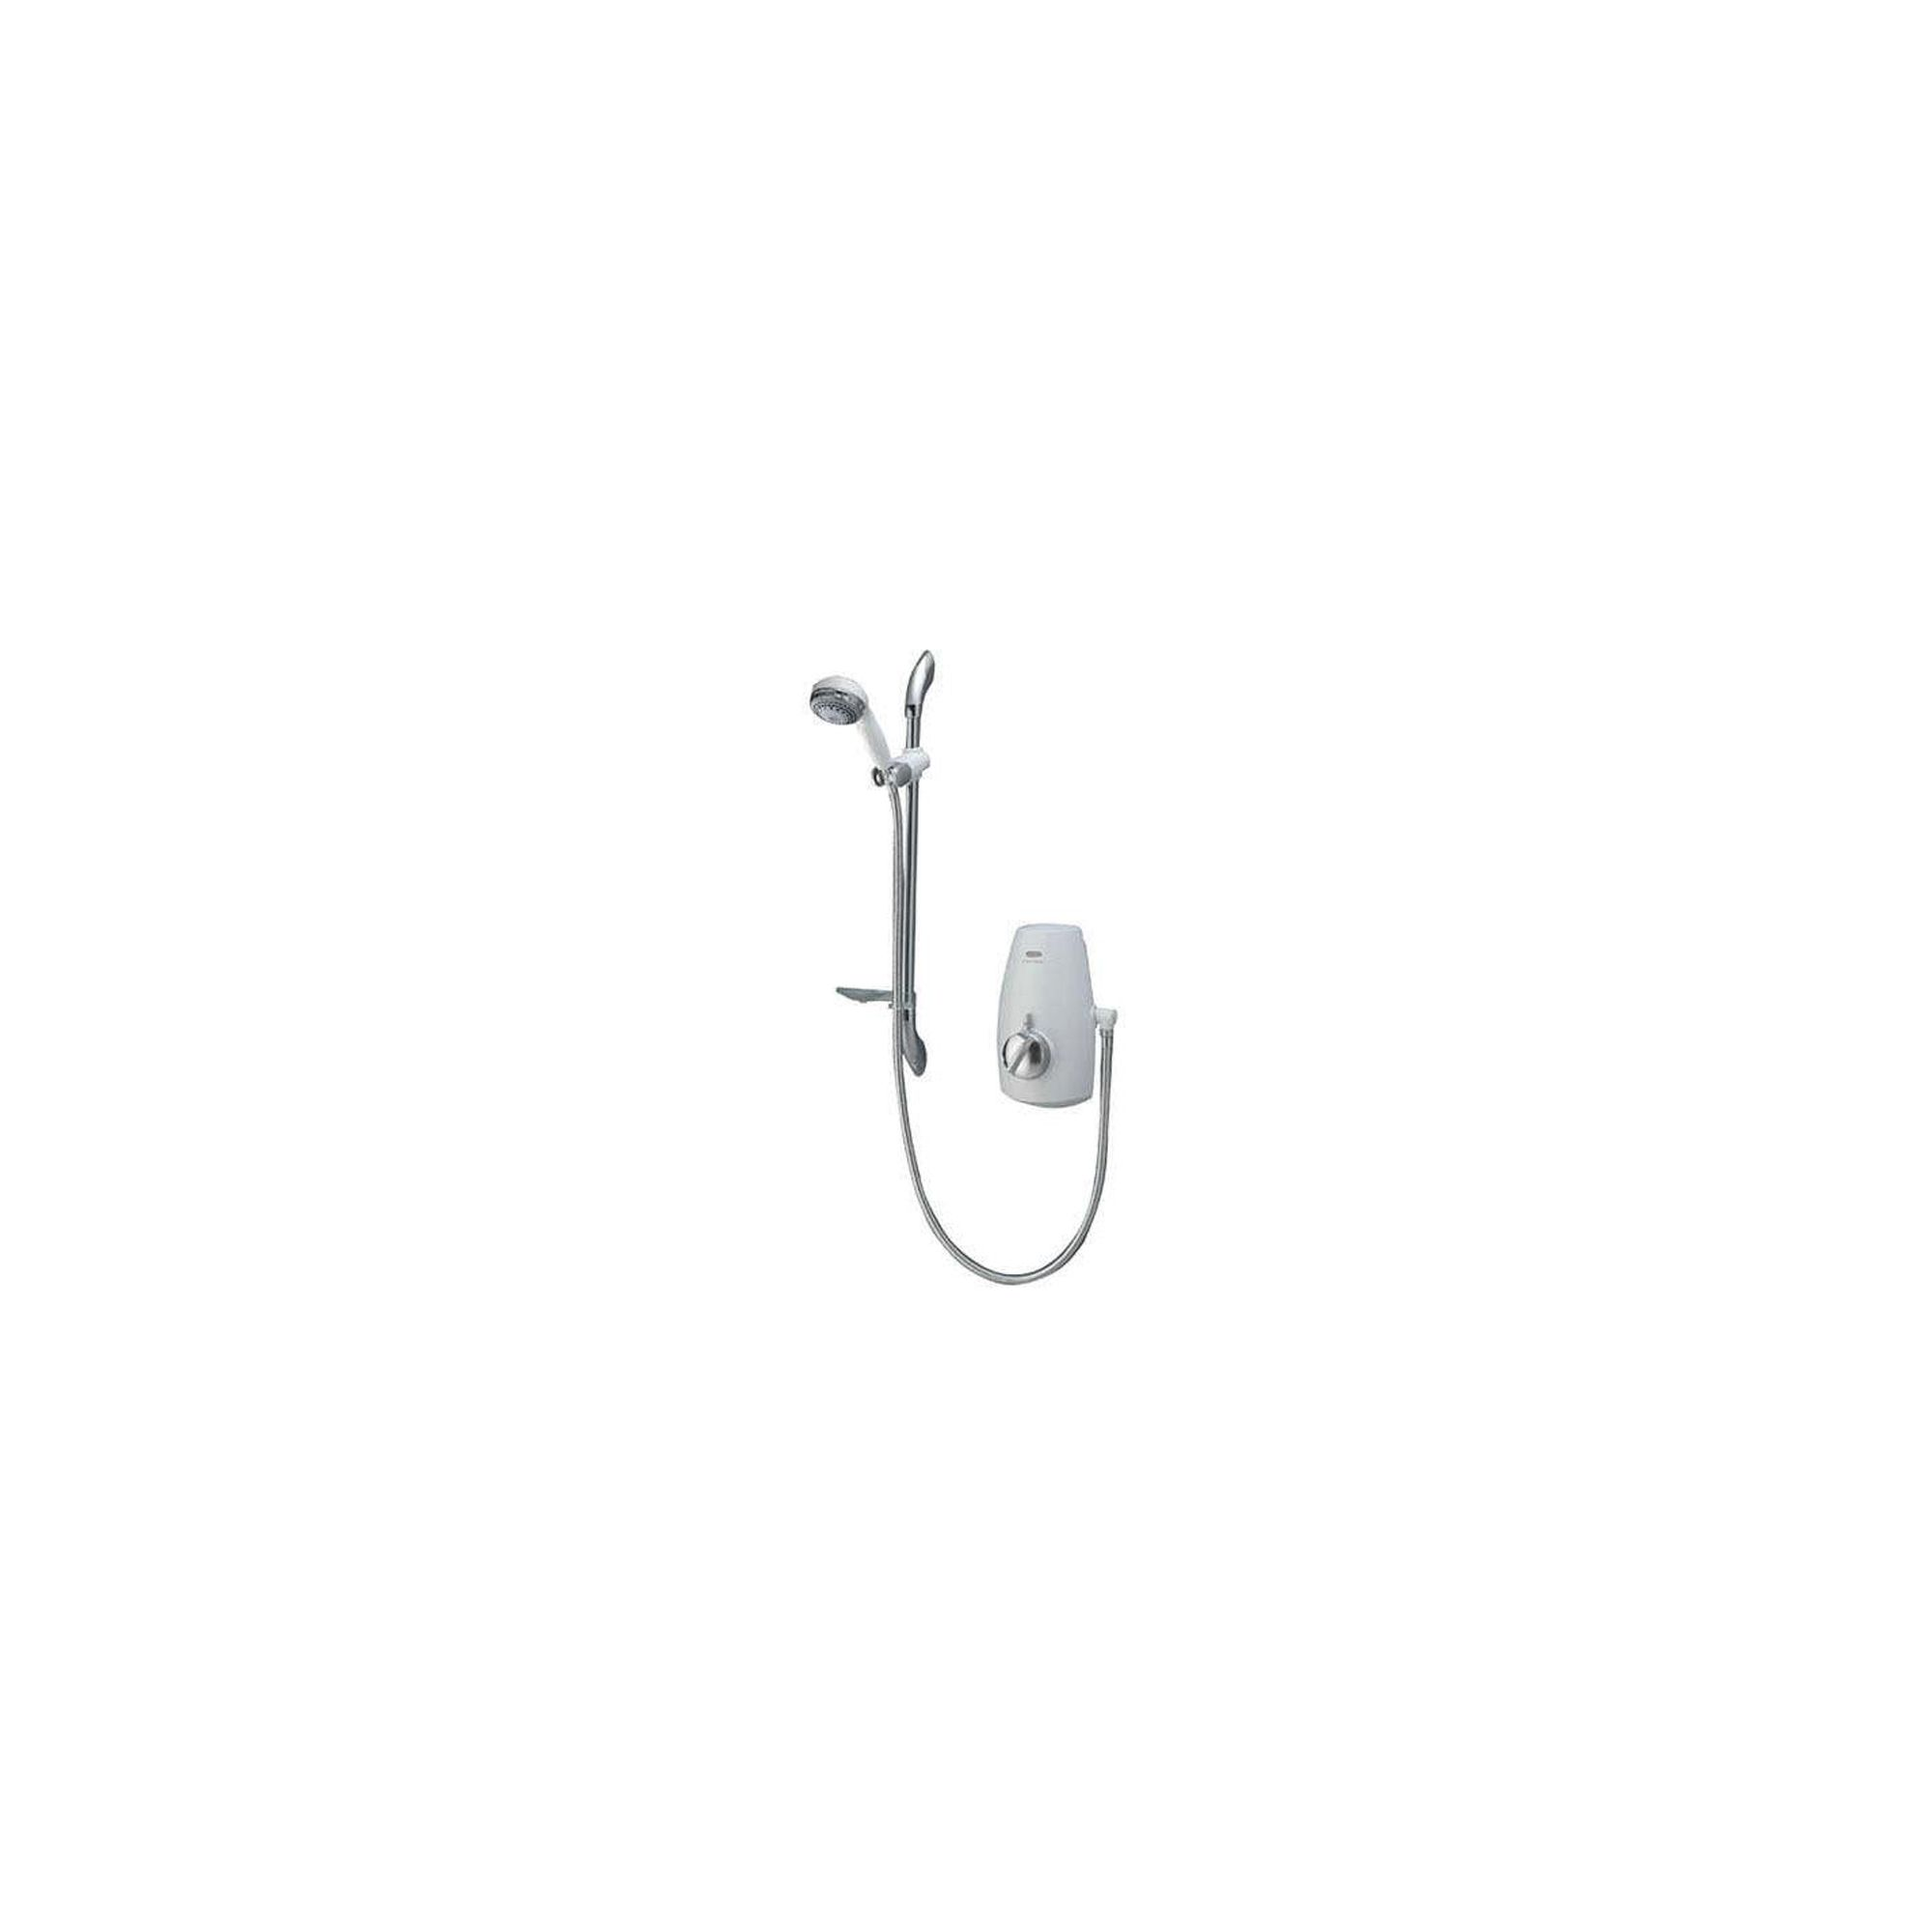 Aqualisa Aquastream Thermo Power Shower with Adjustable Head White / Chrome at Tesco Direct